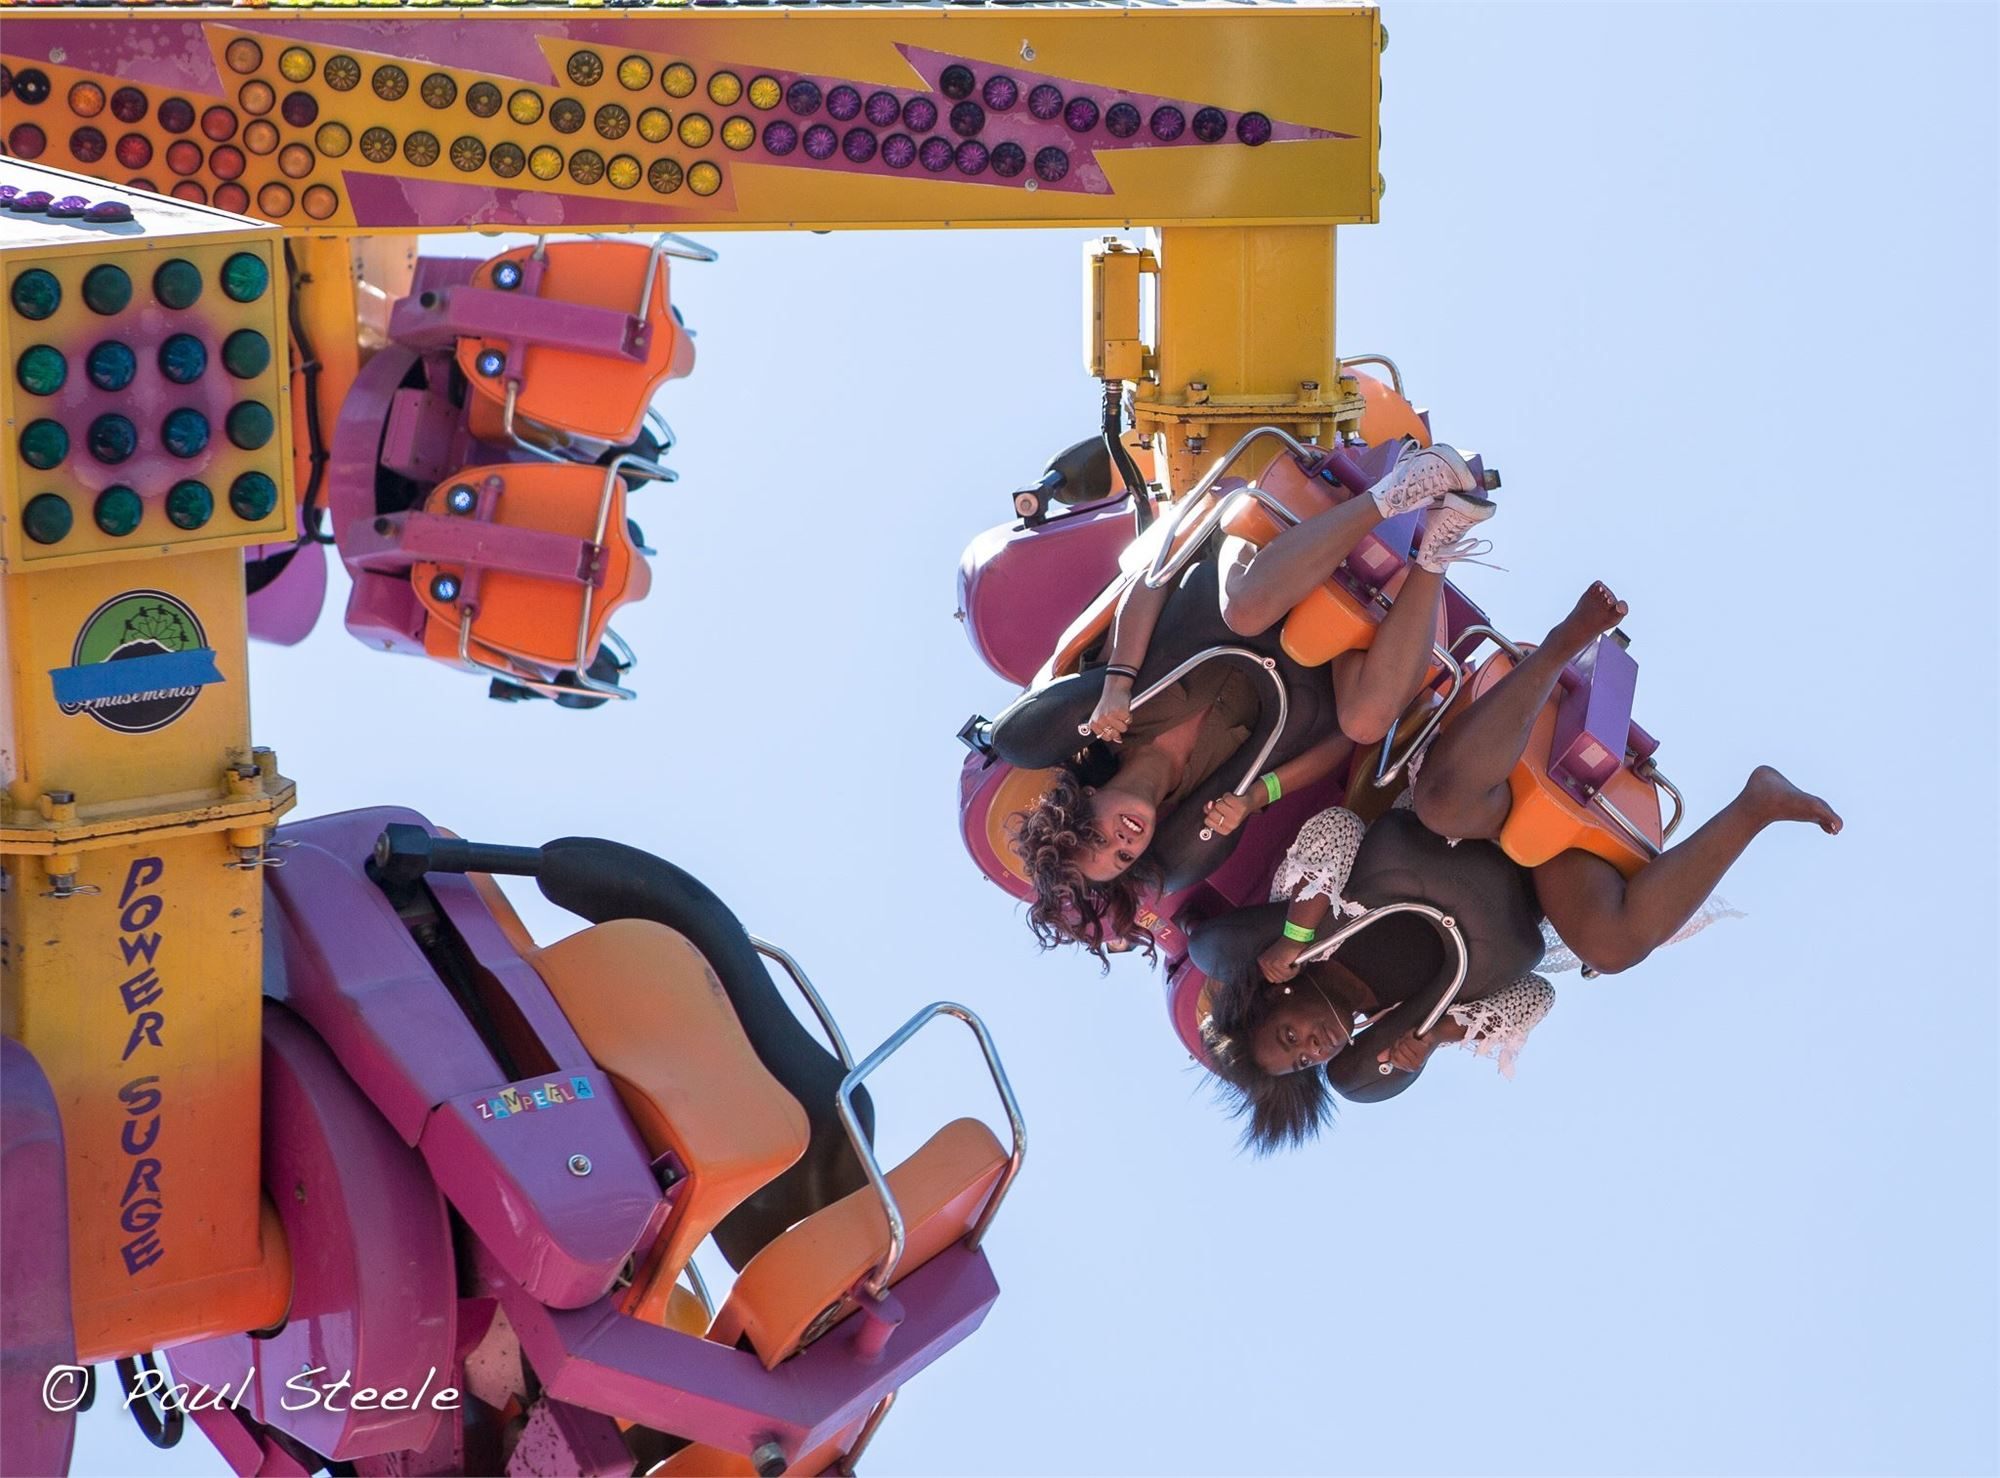 Riders on a carnival ride